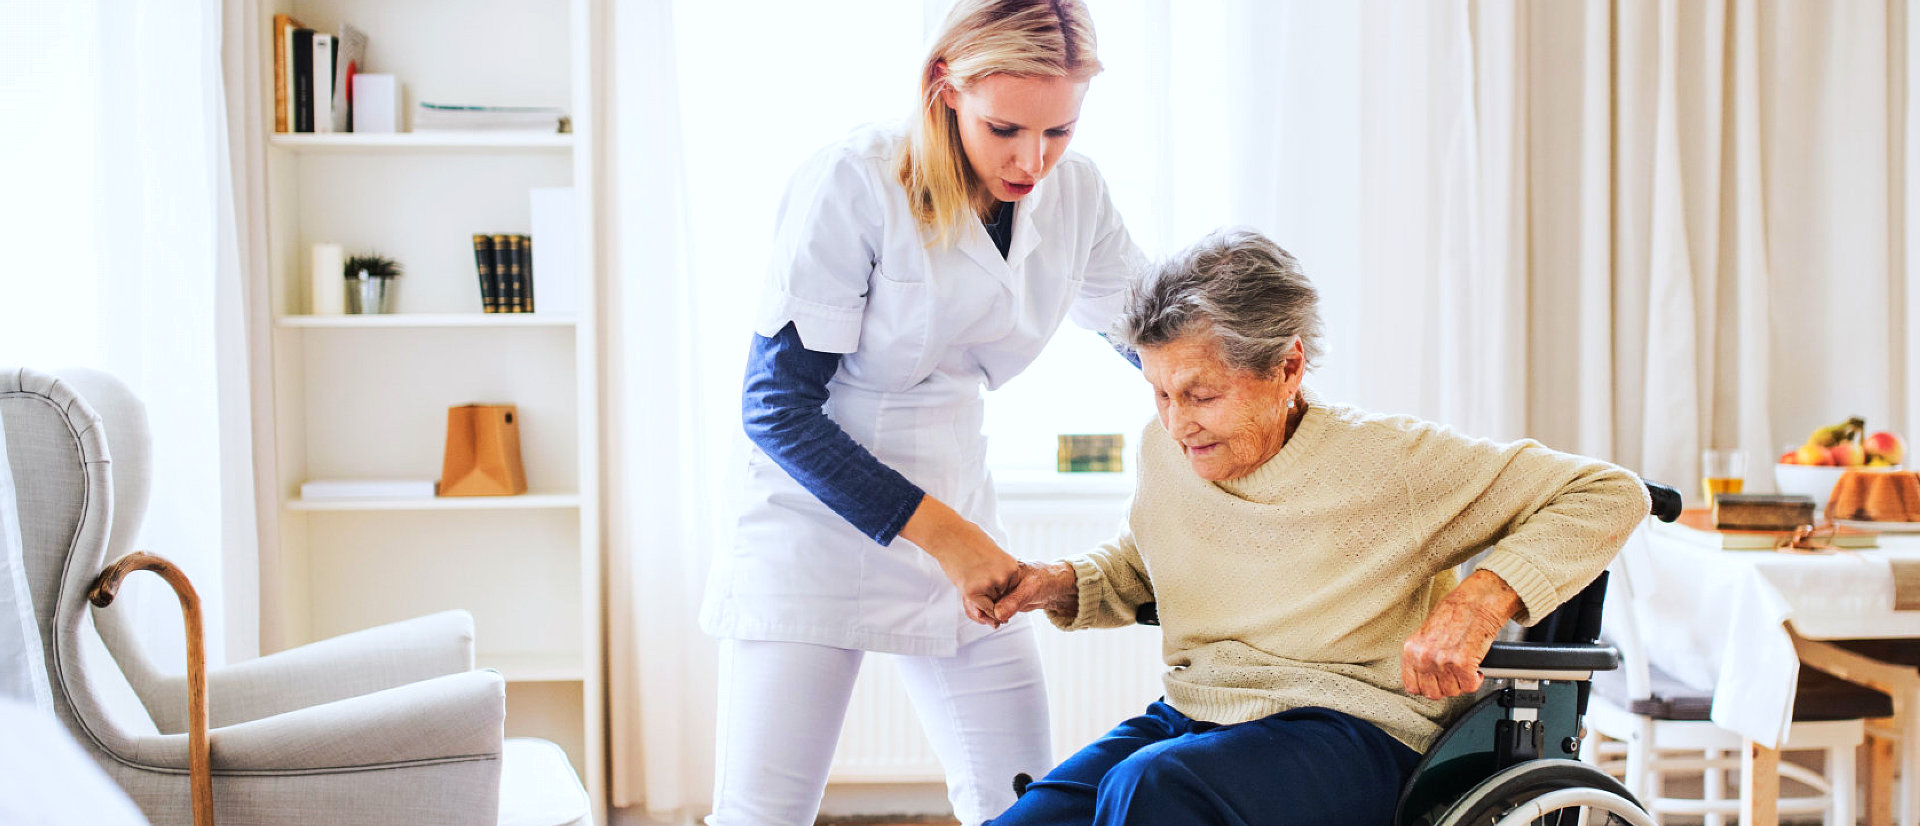 caregiver helping senior woman get up